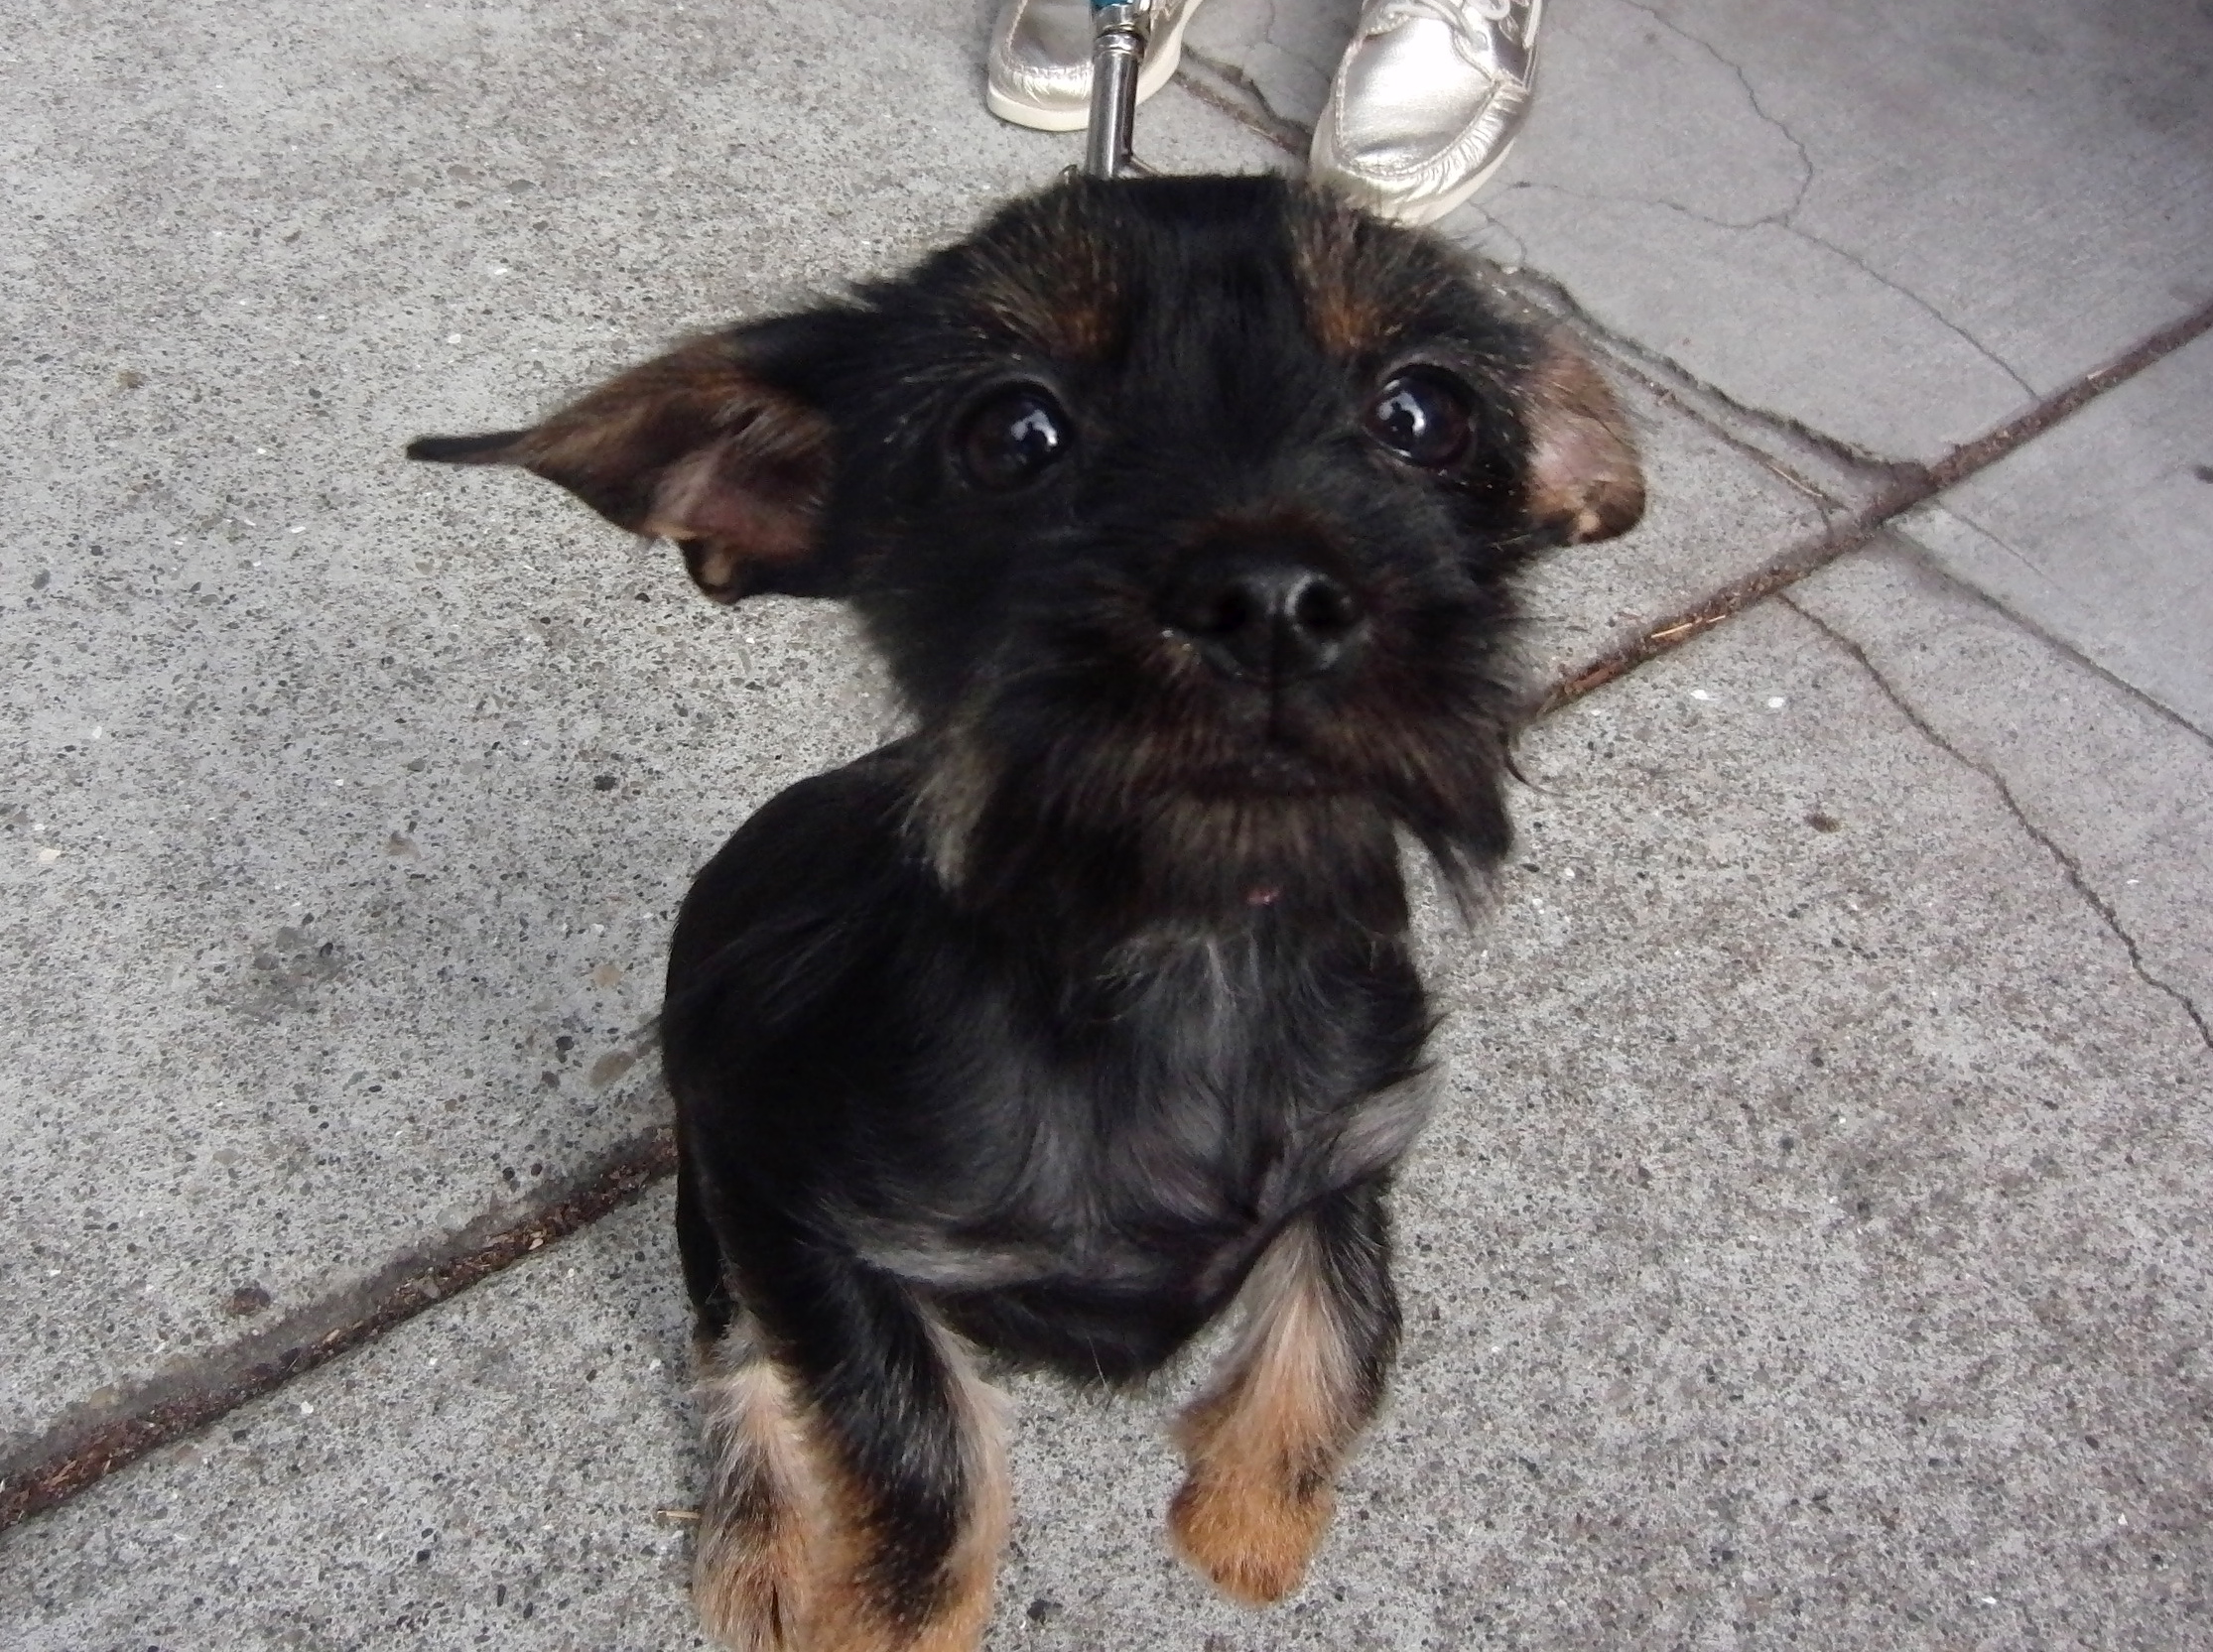 Four-Month-Old Yorkshire Terrier (Yorkie) With Puppy Coloration